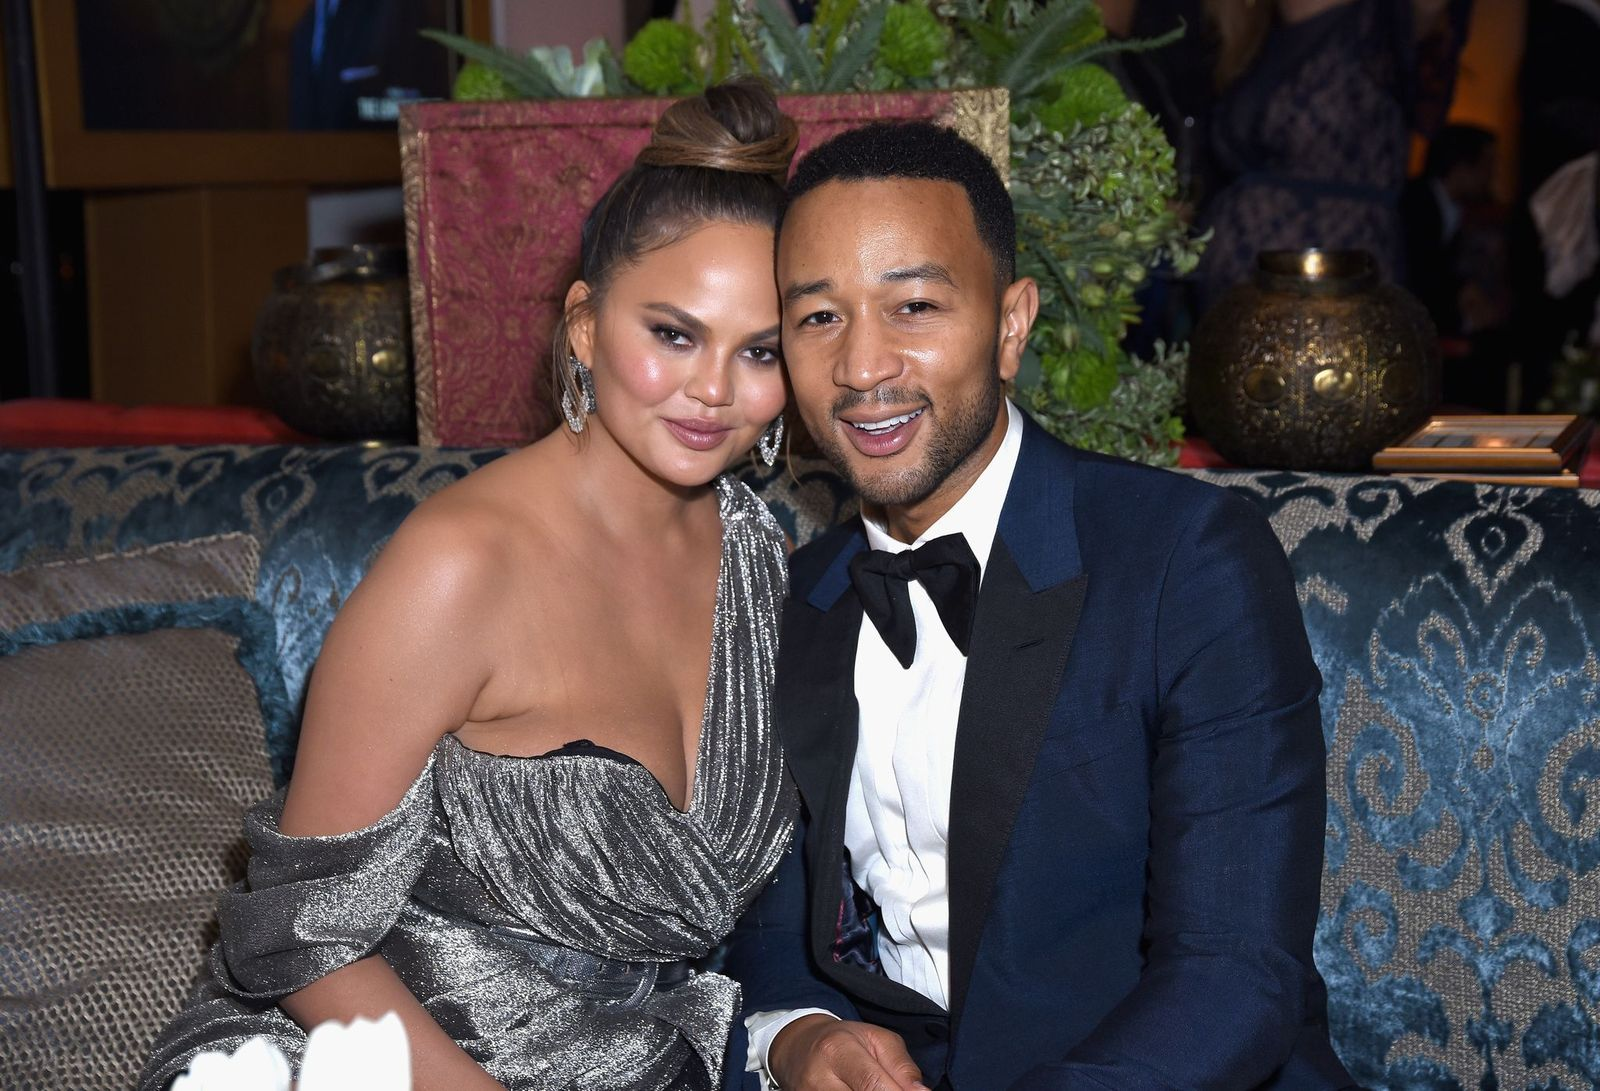 Chrissy Teigen and John Legend at Hulu's Emmy Party at the Nomad Hotel Los Angeles on September 17, 2018, in California | Photo: Presley Ann/Getty Images